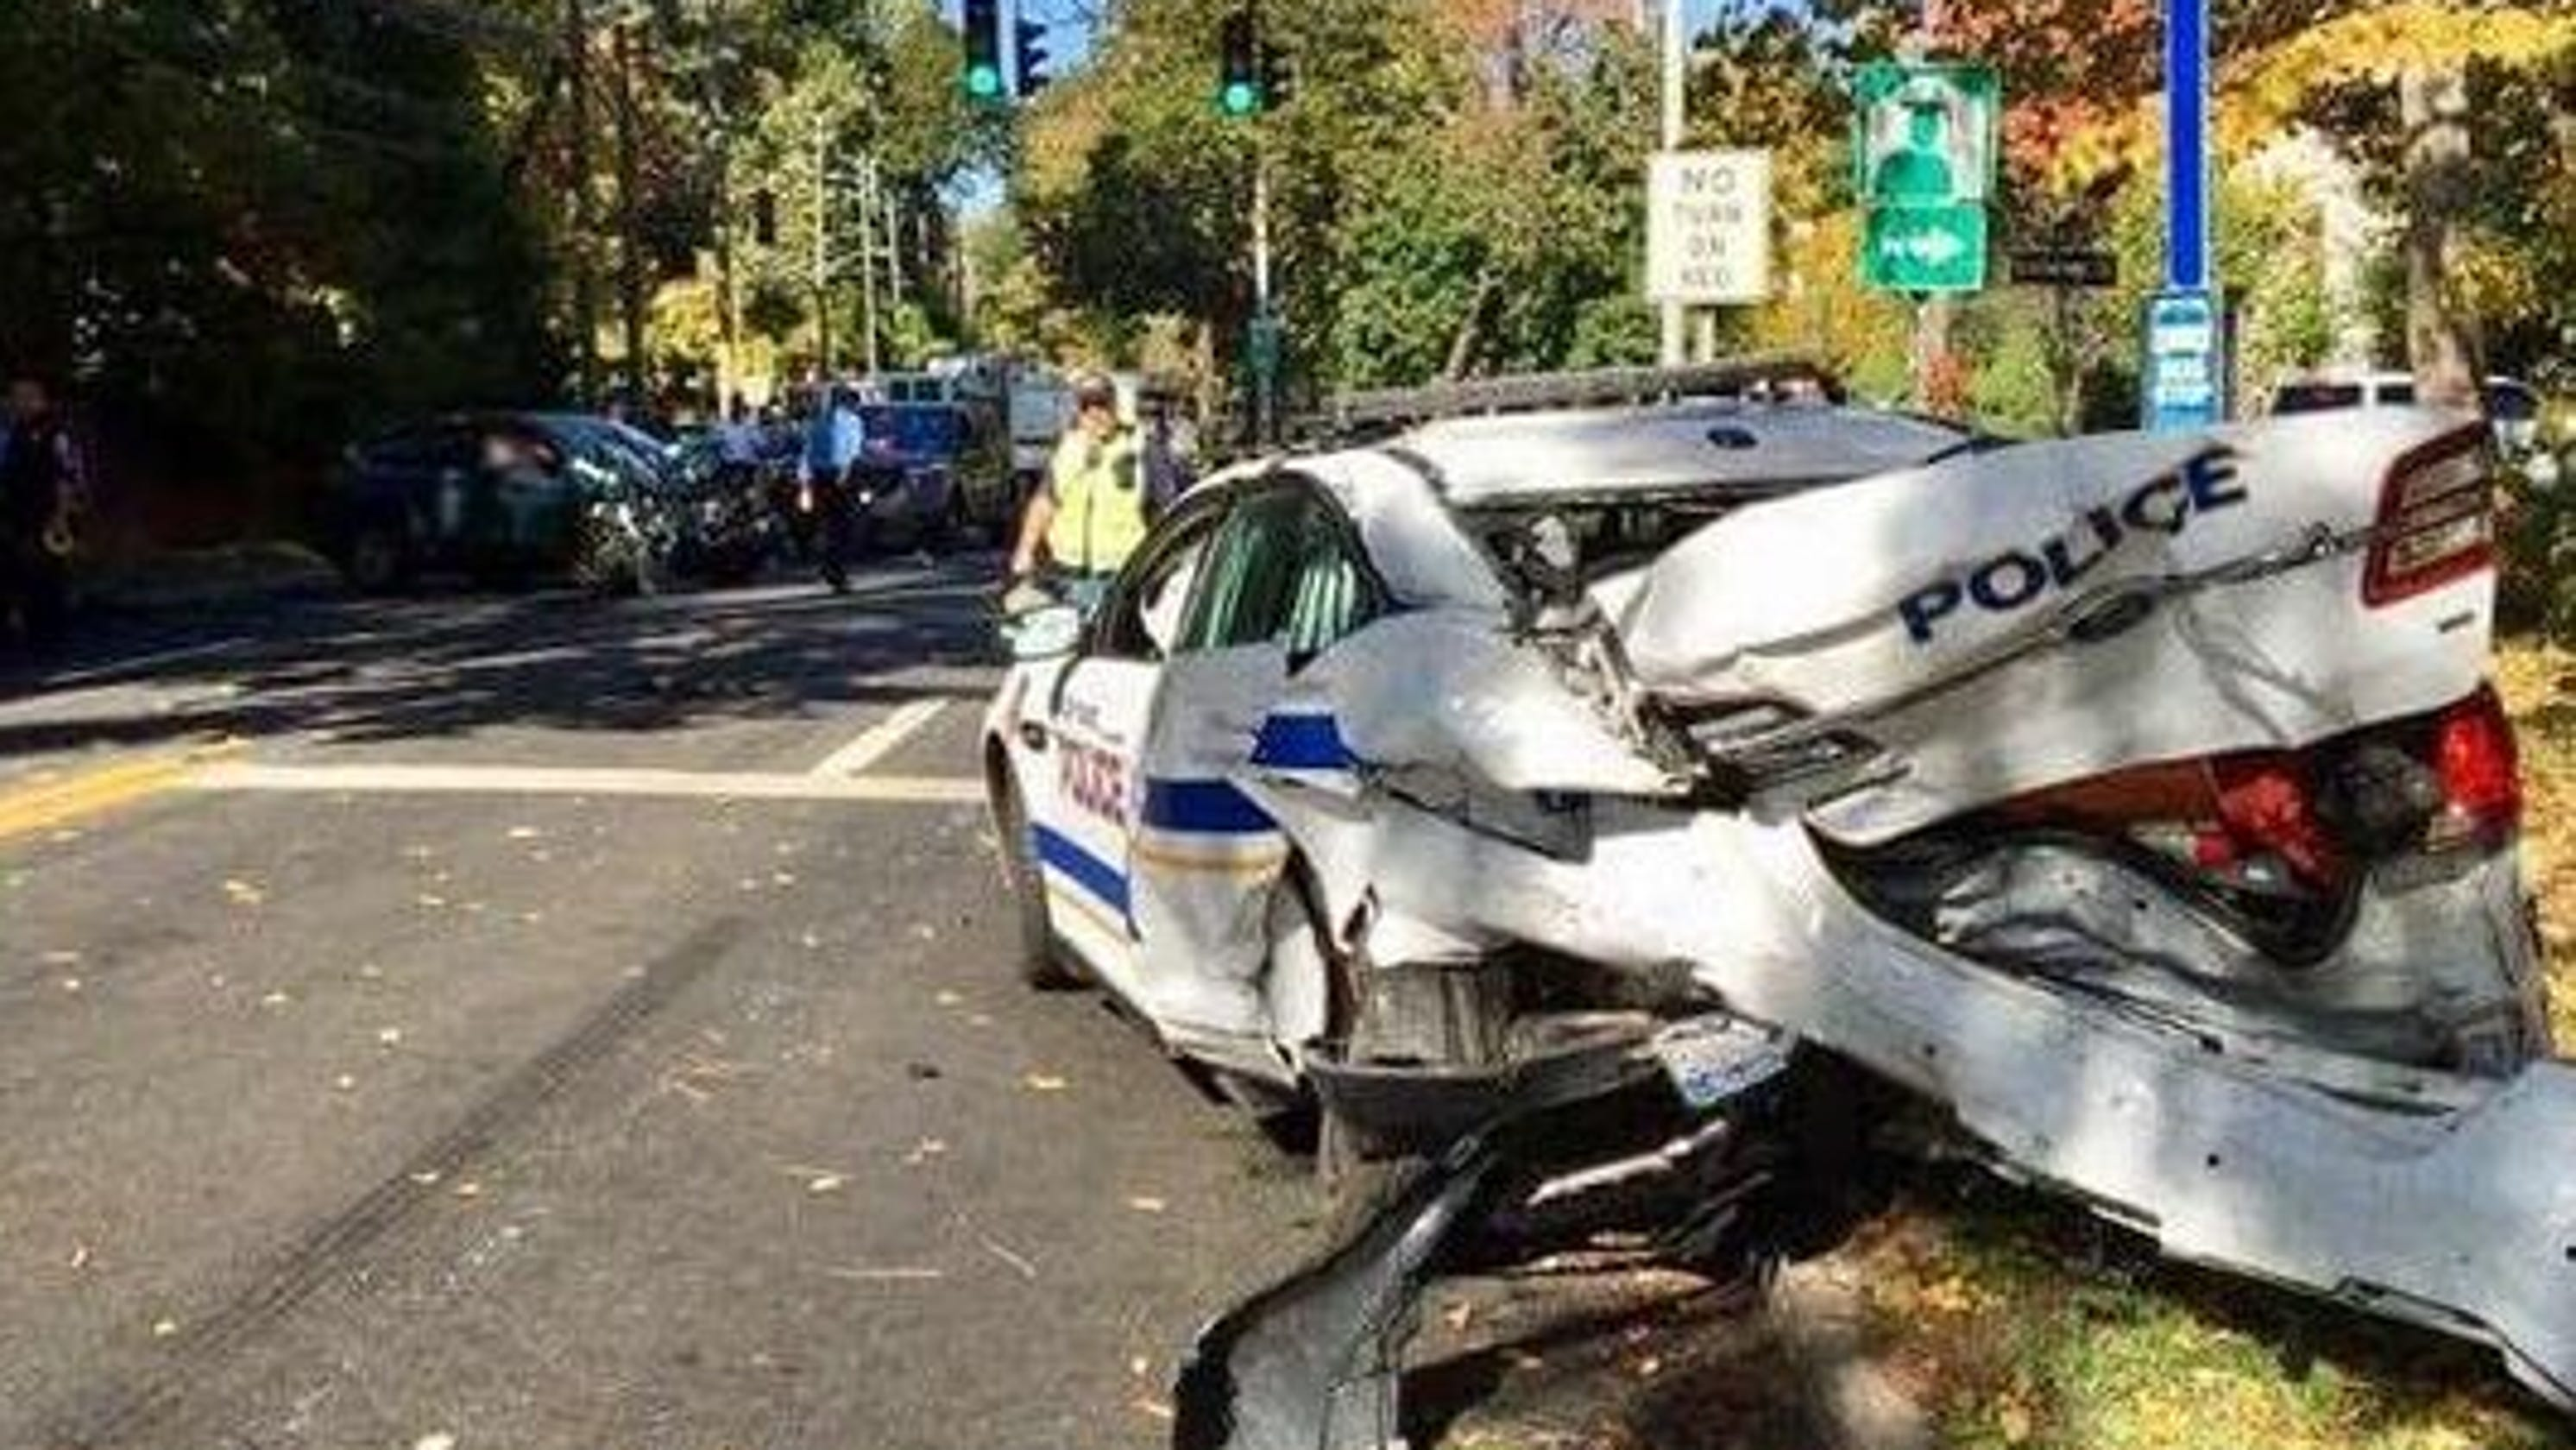 Briarcliff sues Ossining over police chase car crash that injured cop